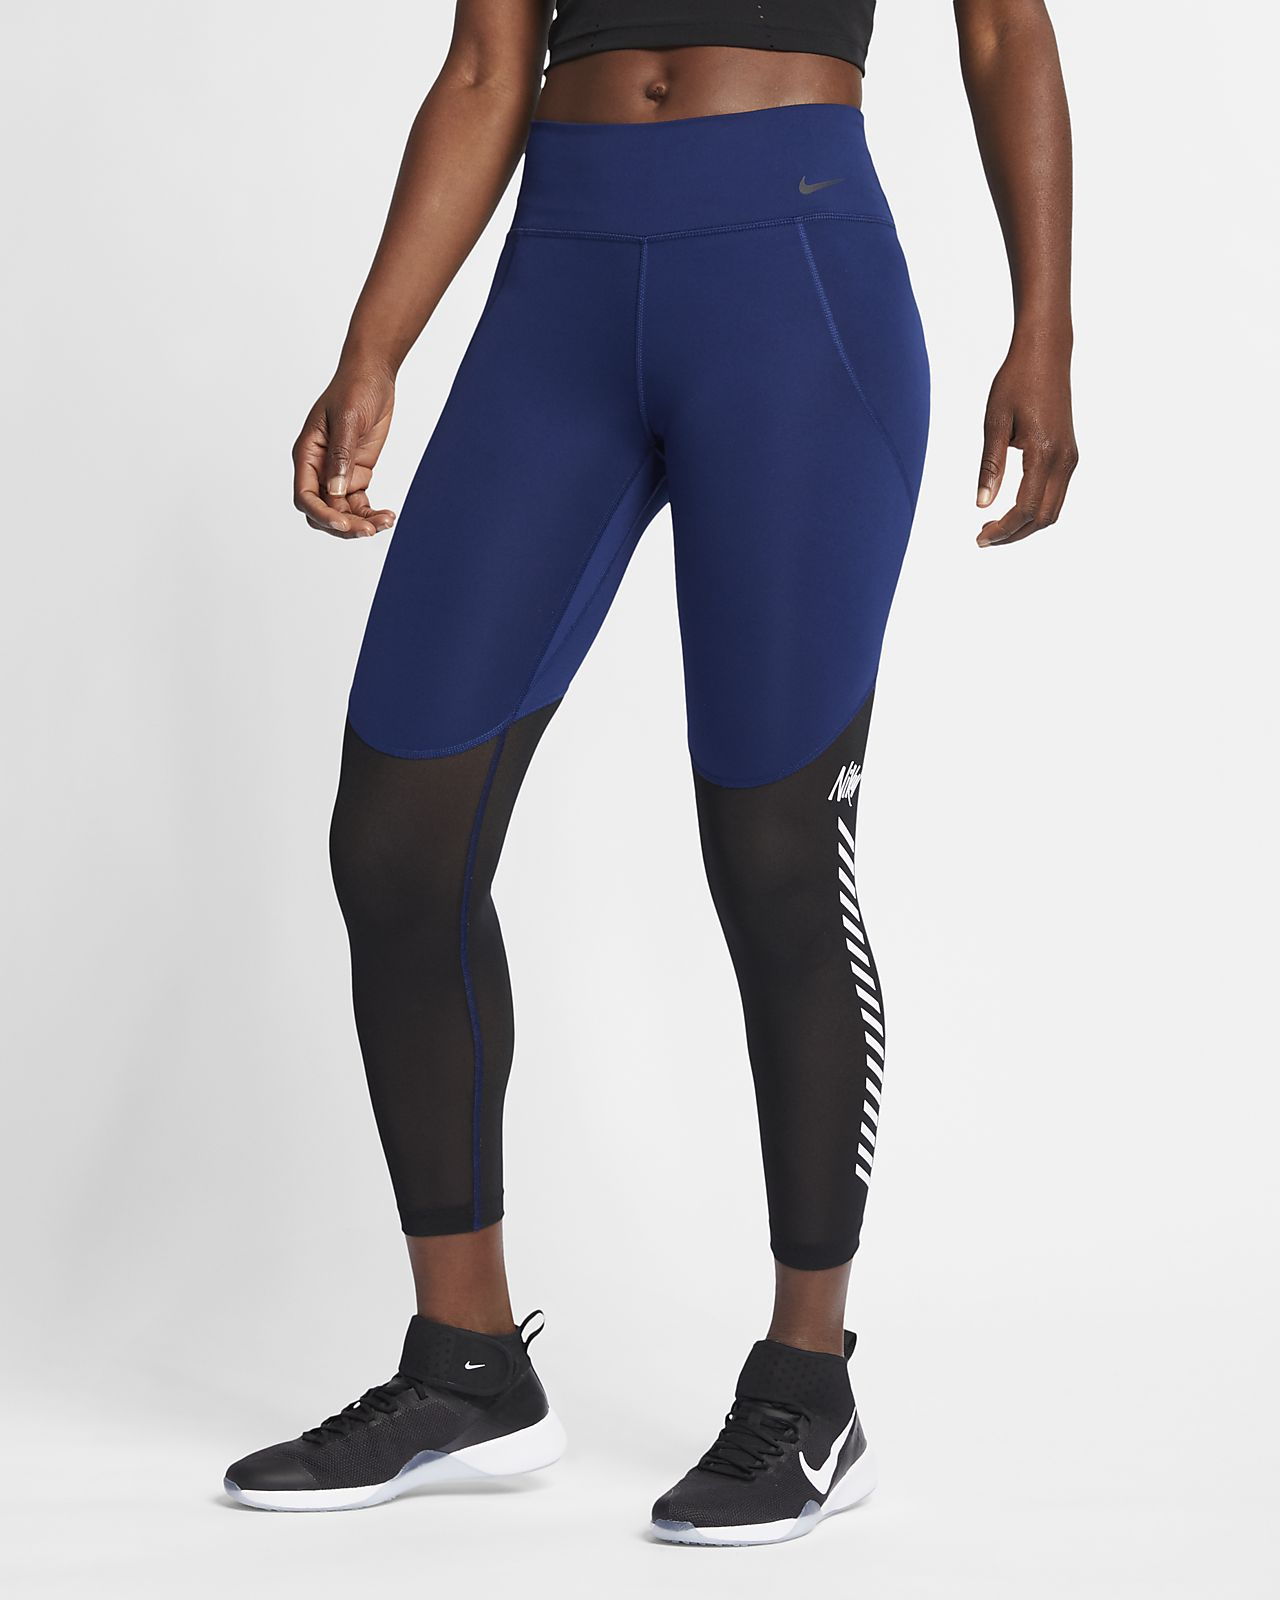 ed811a5b9d Nike One Women s 7 8 Graphic Training Tights. Nike.com VN